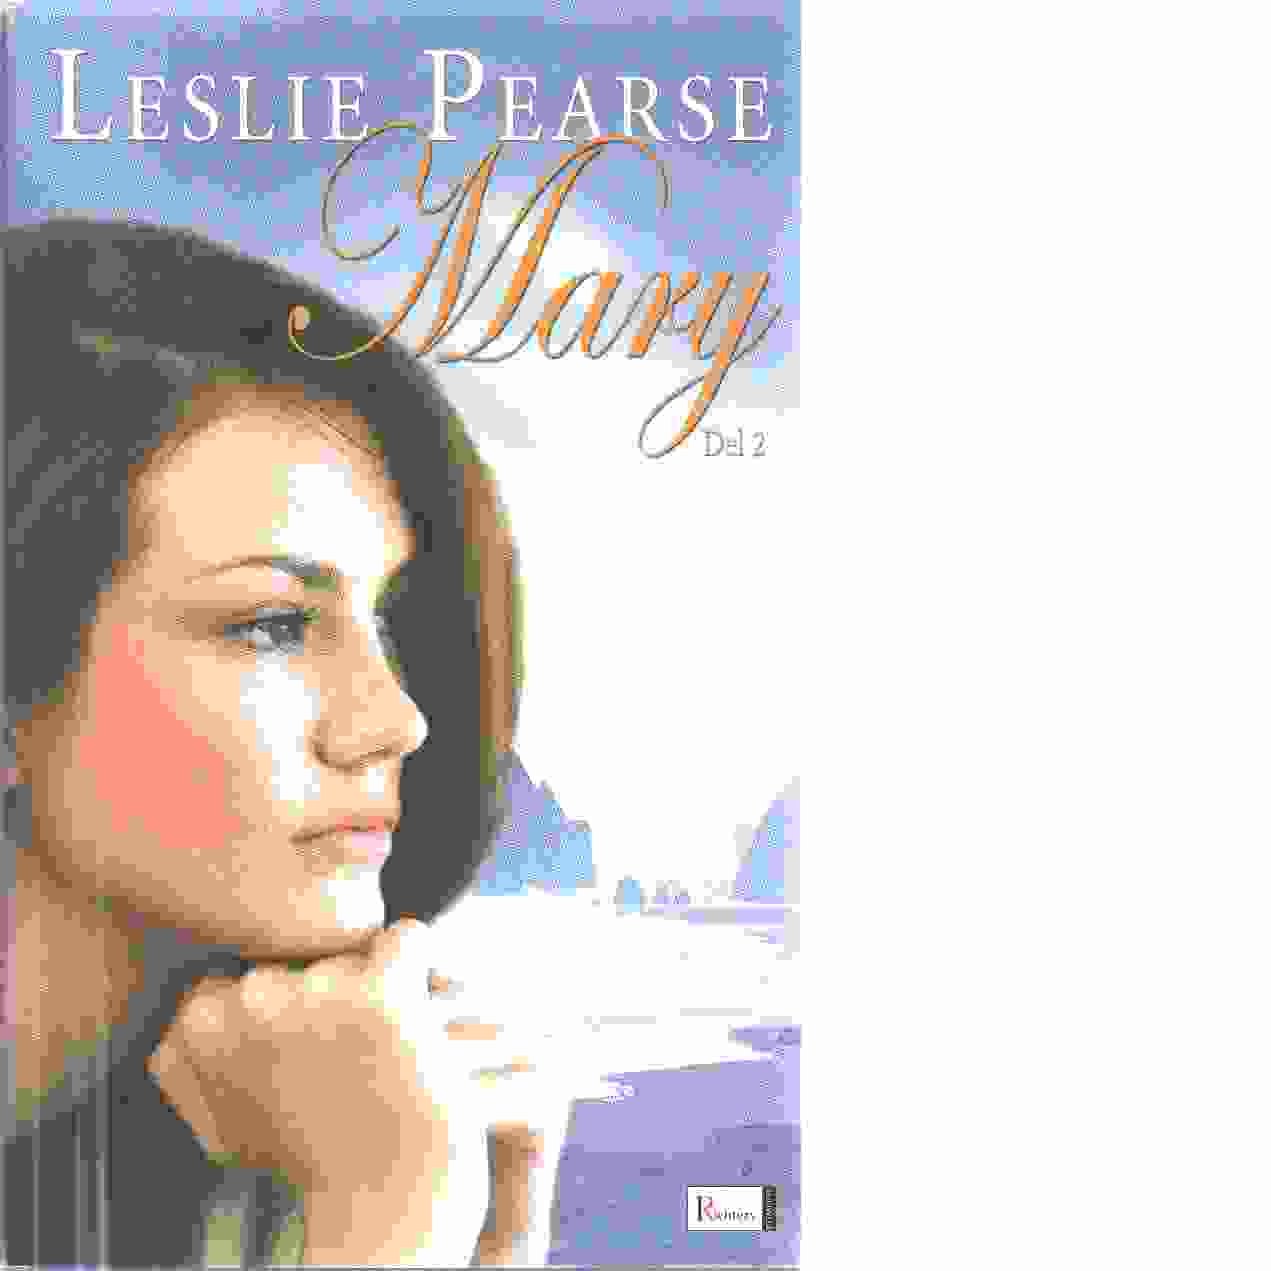 Mary. D. 2 - Pearse, Lesley